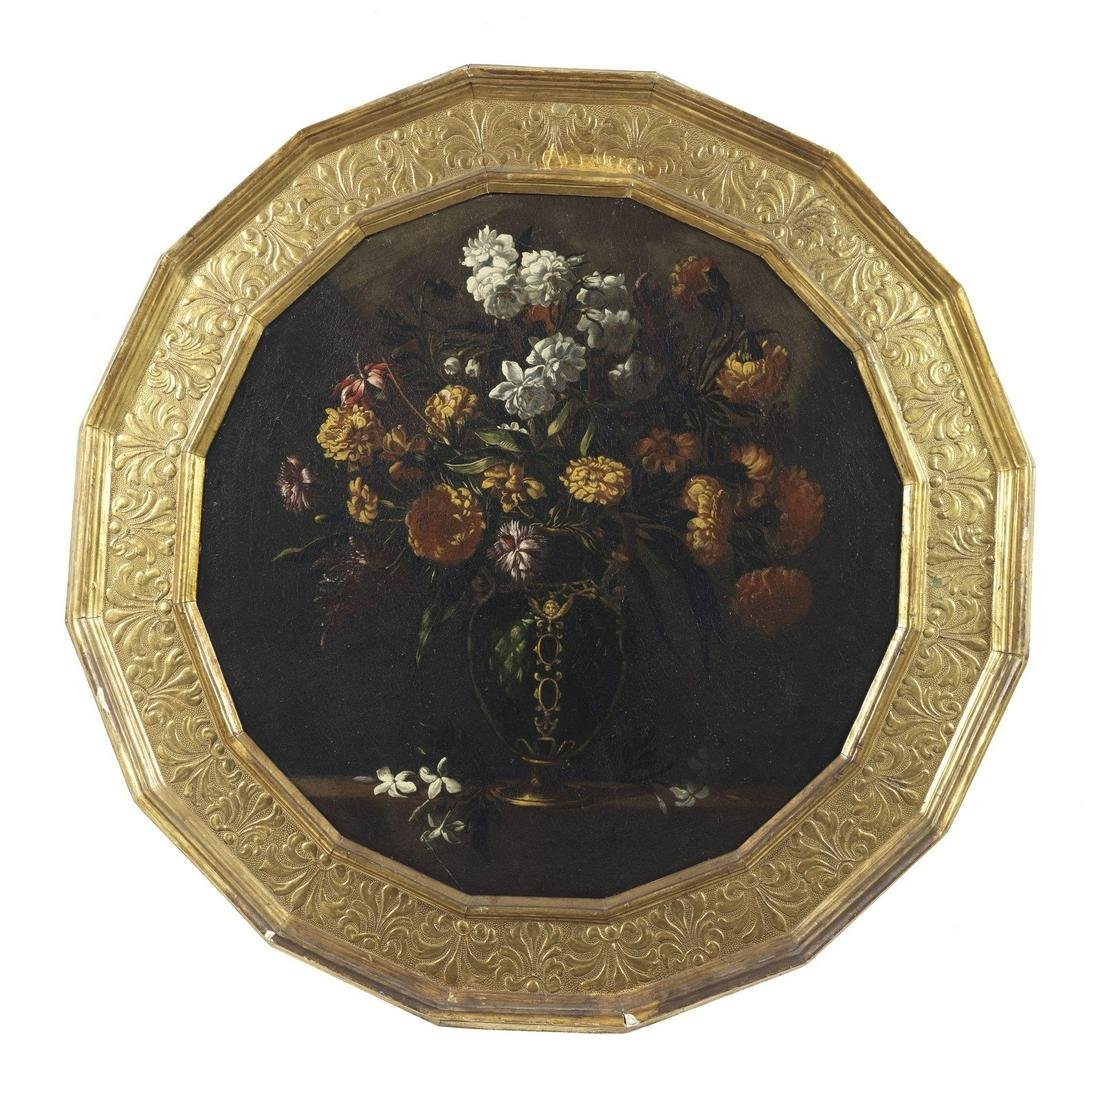 GIACOMO RECCO Attributed to. Still life with flowers.